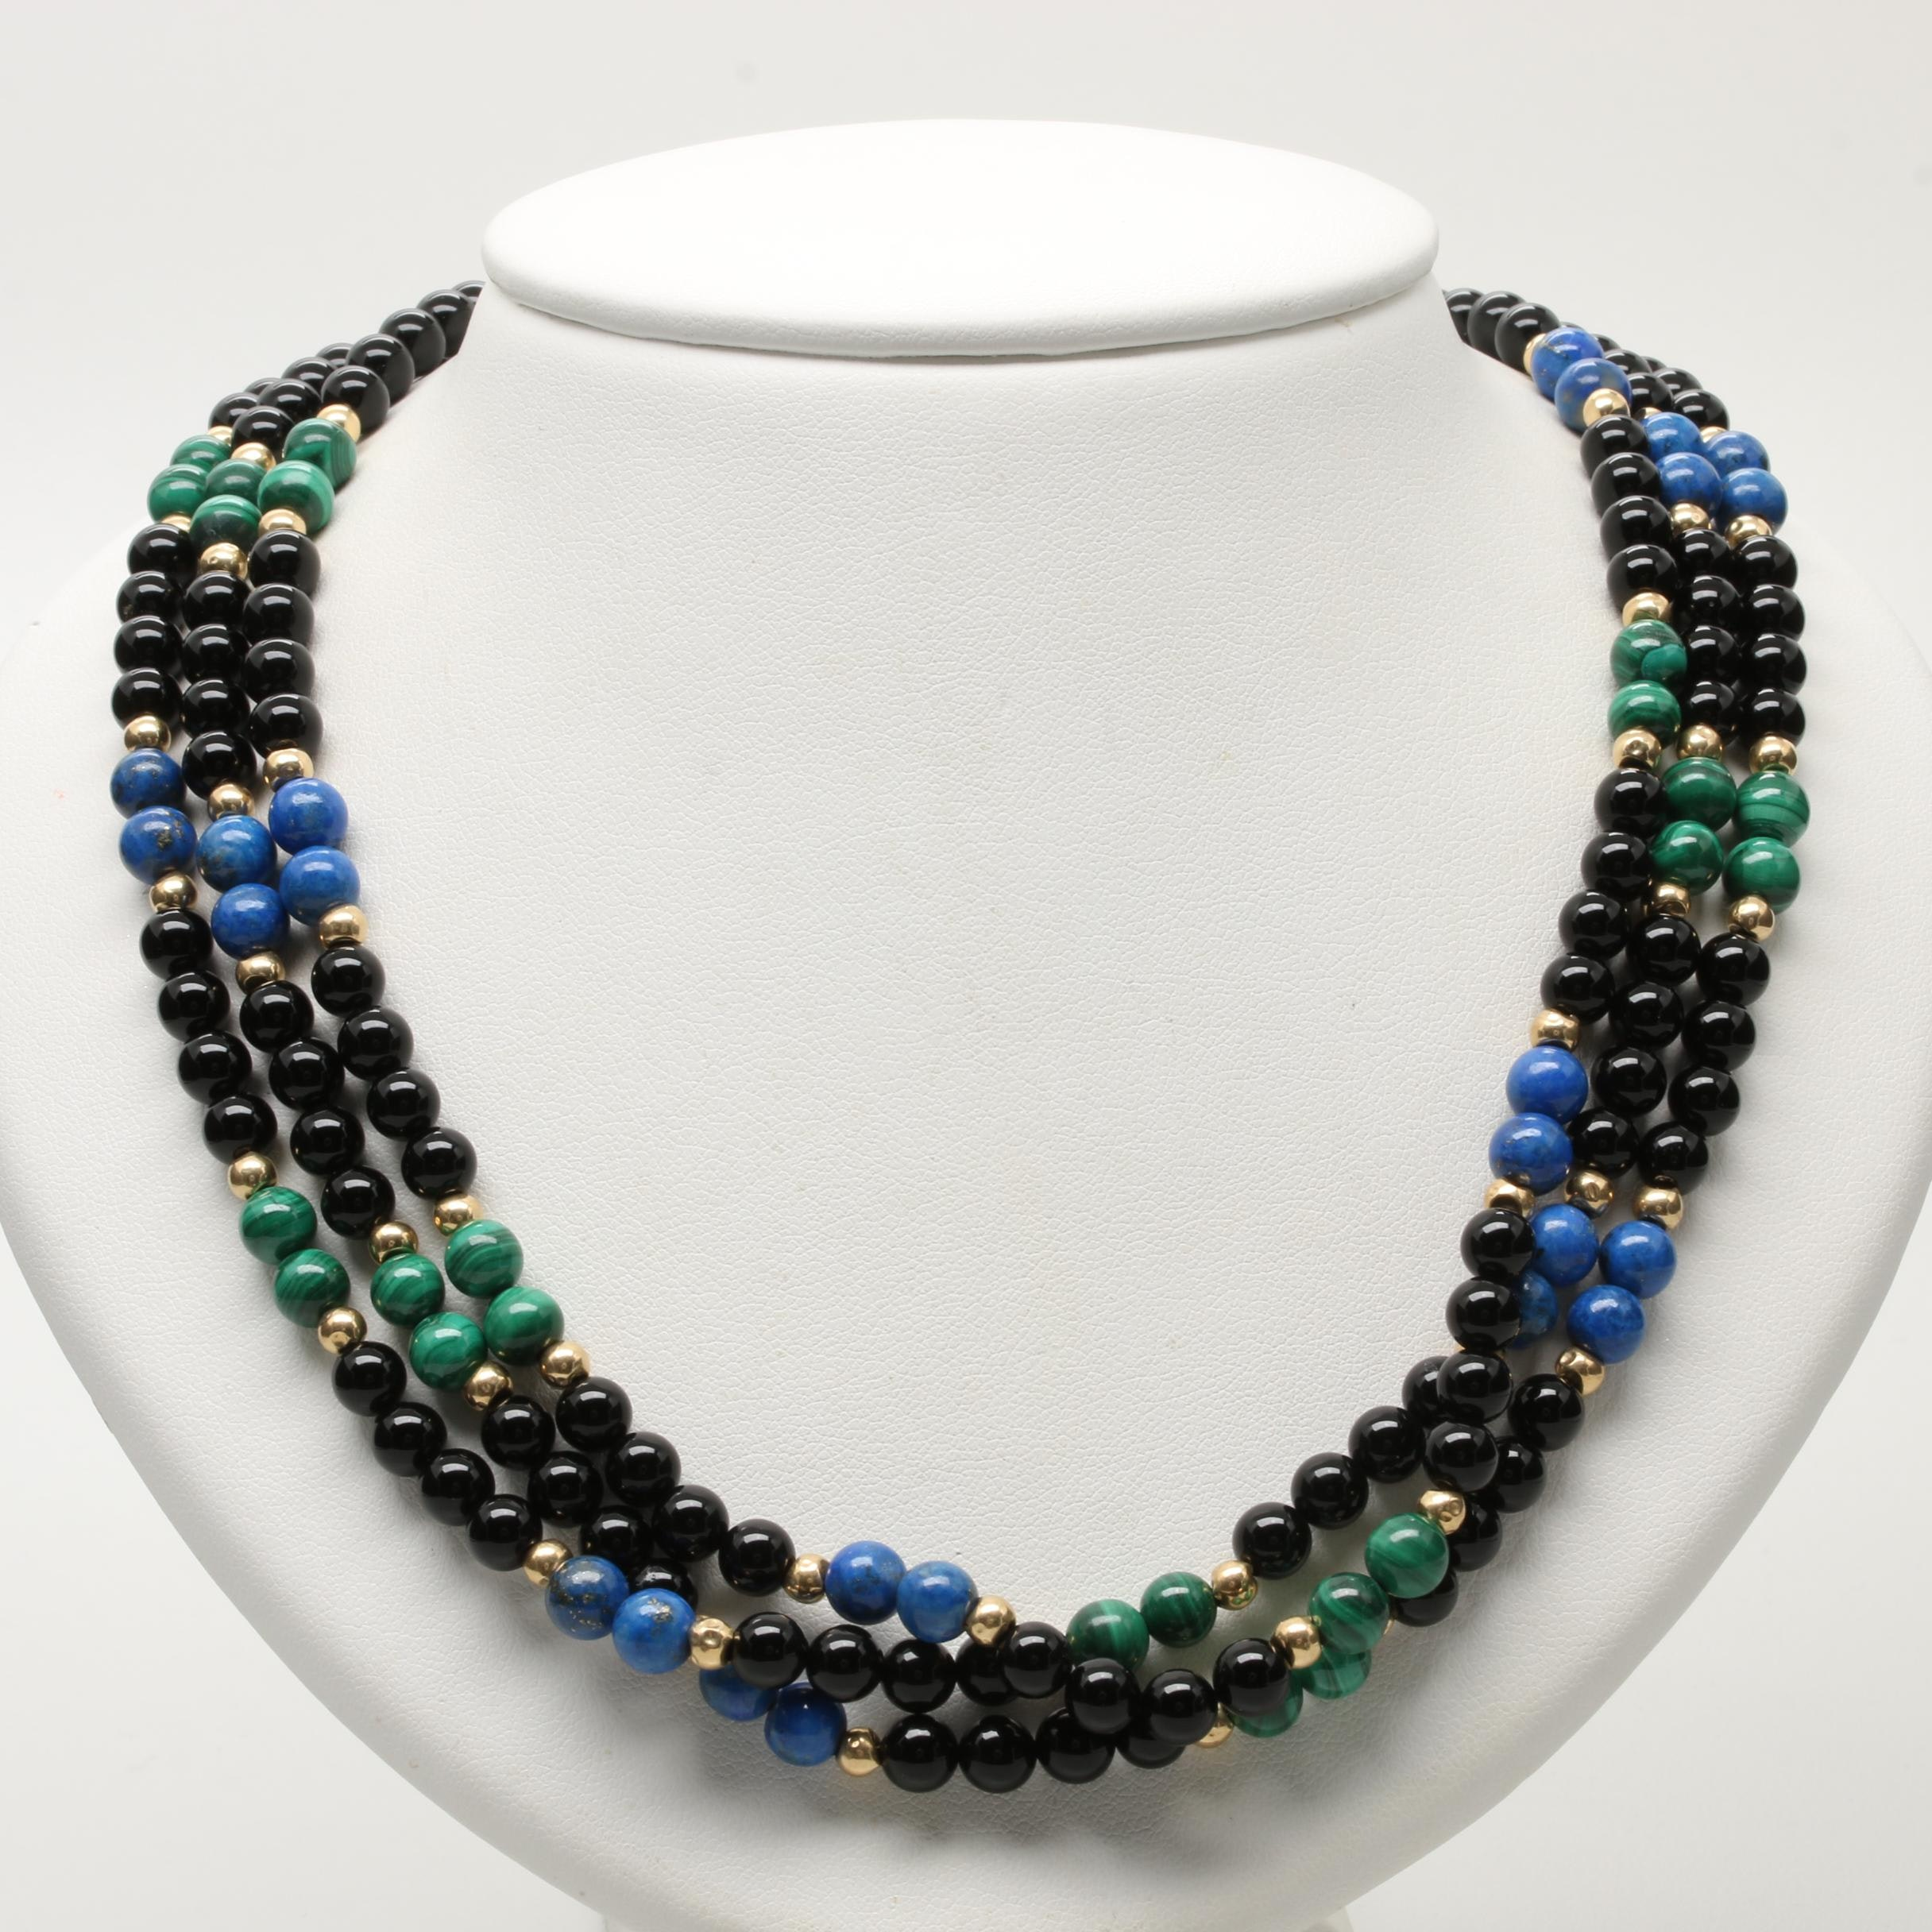 14K Yellow Gold Lapis Lazuli, Black Onyx and Malachite Multi Strand Necklace